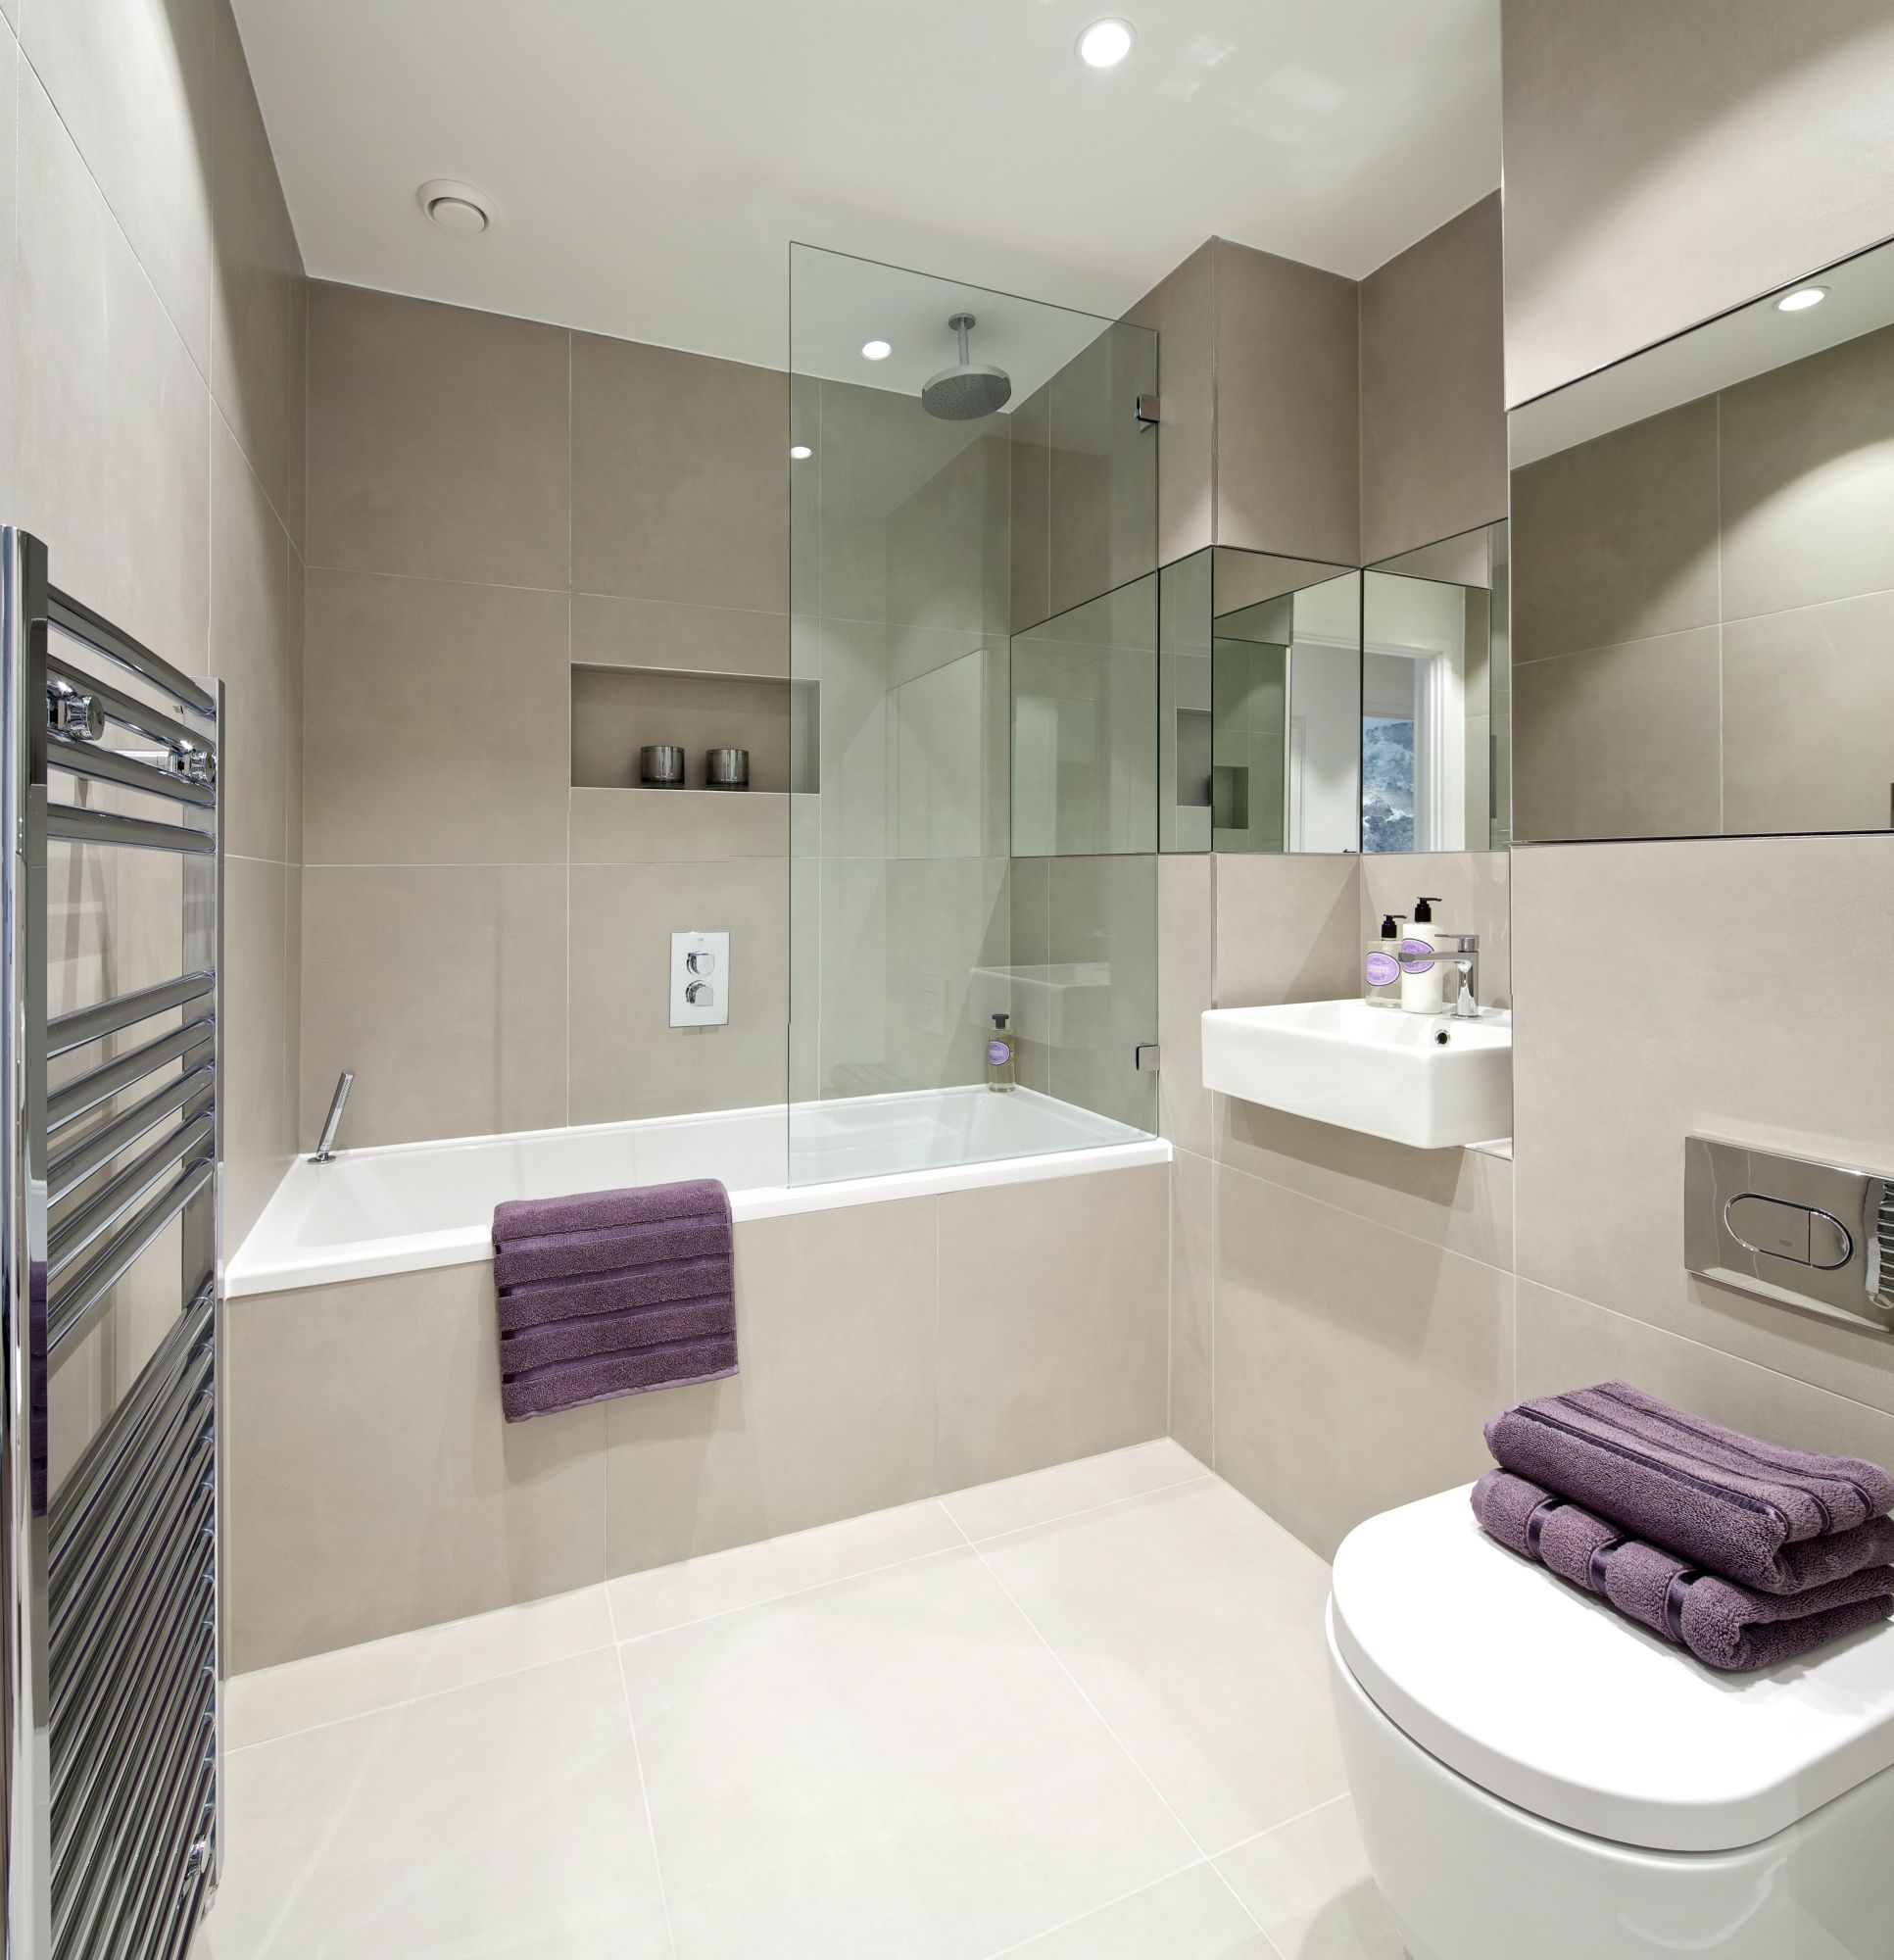 Stunning home interiors bathroom another stunning show for Pictures of beautiful bathroom designs